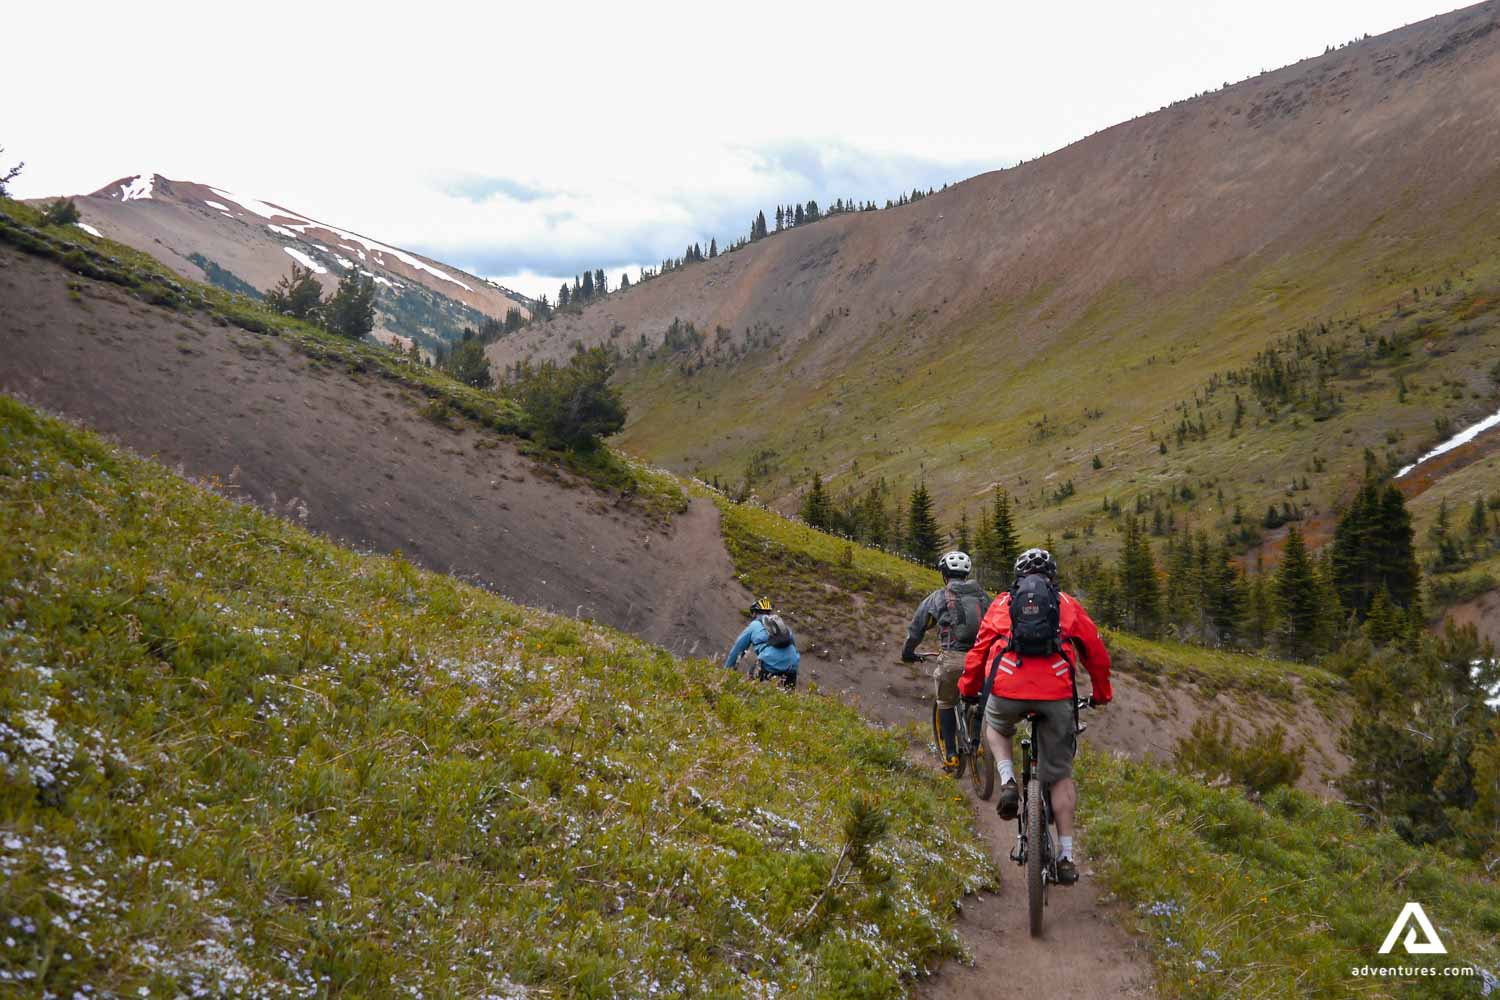 A group of cyclers in the mountains